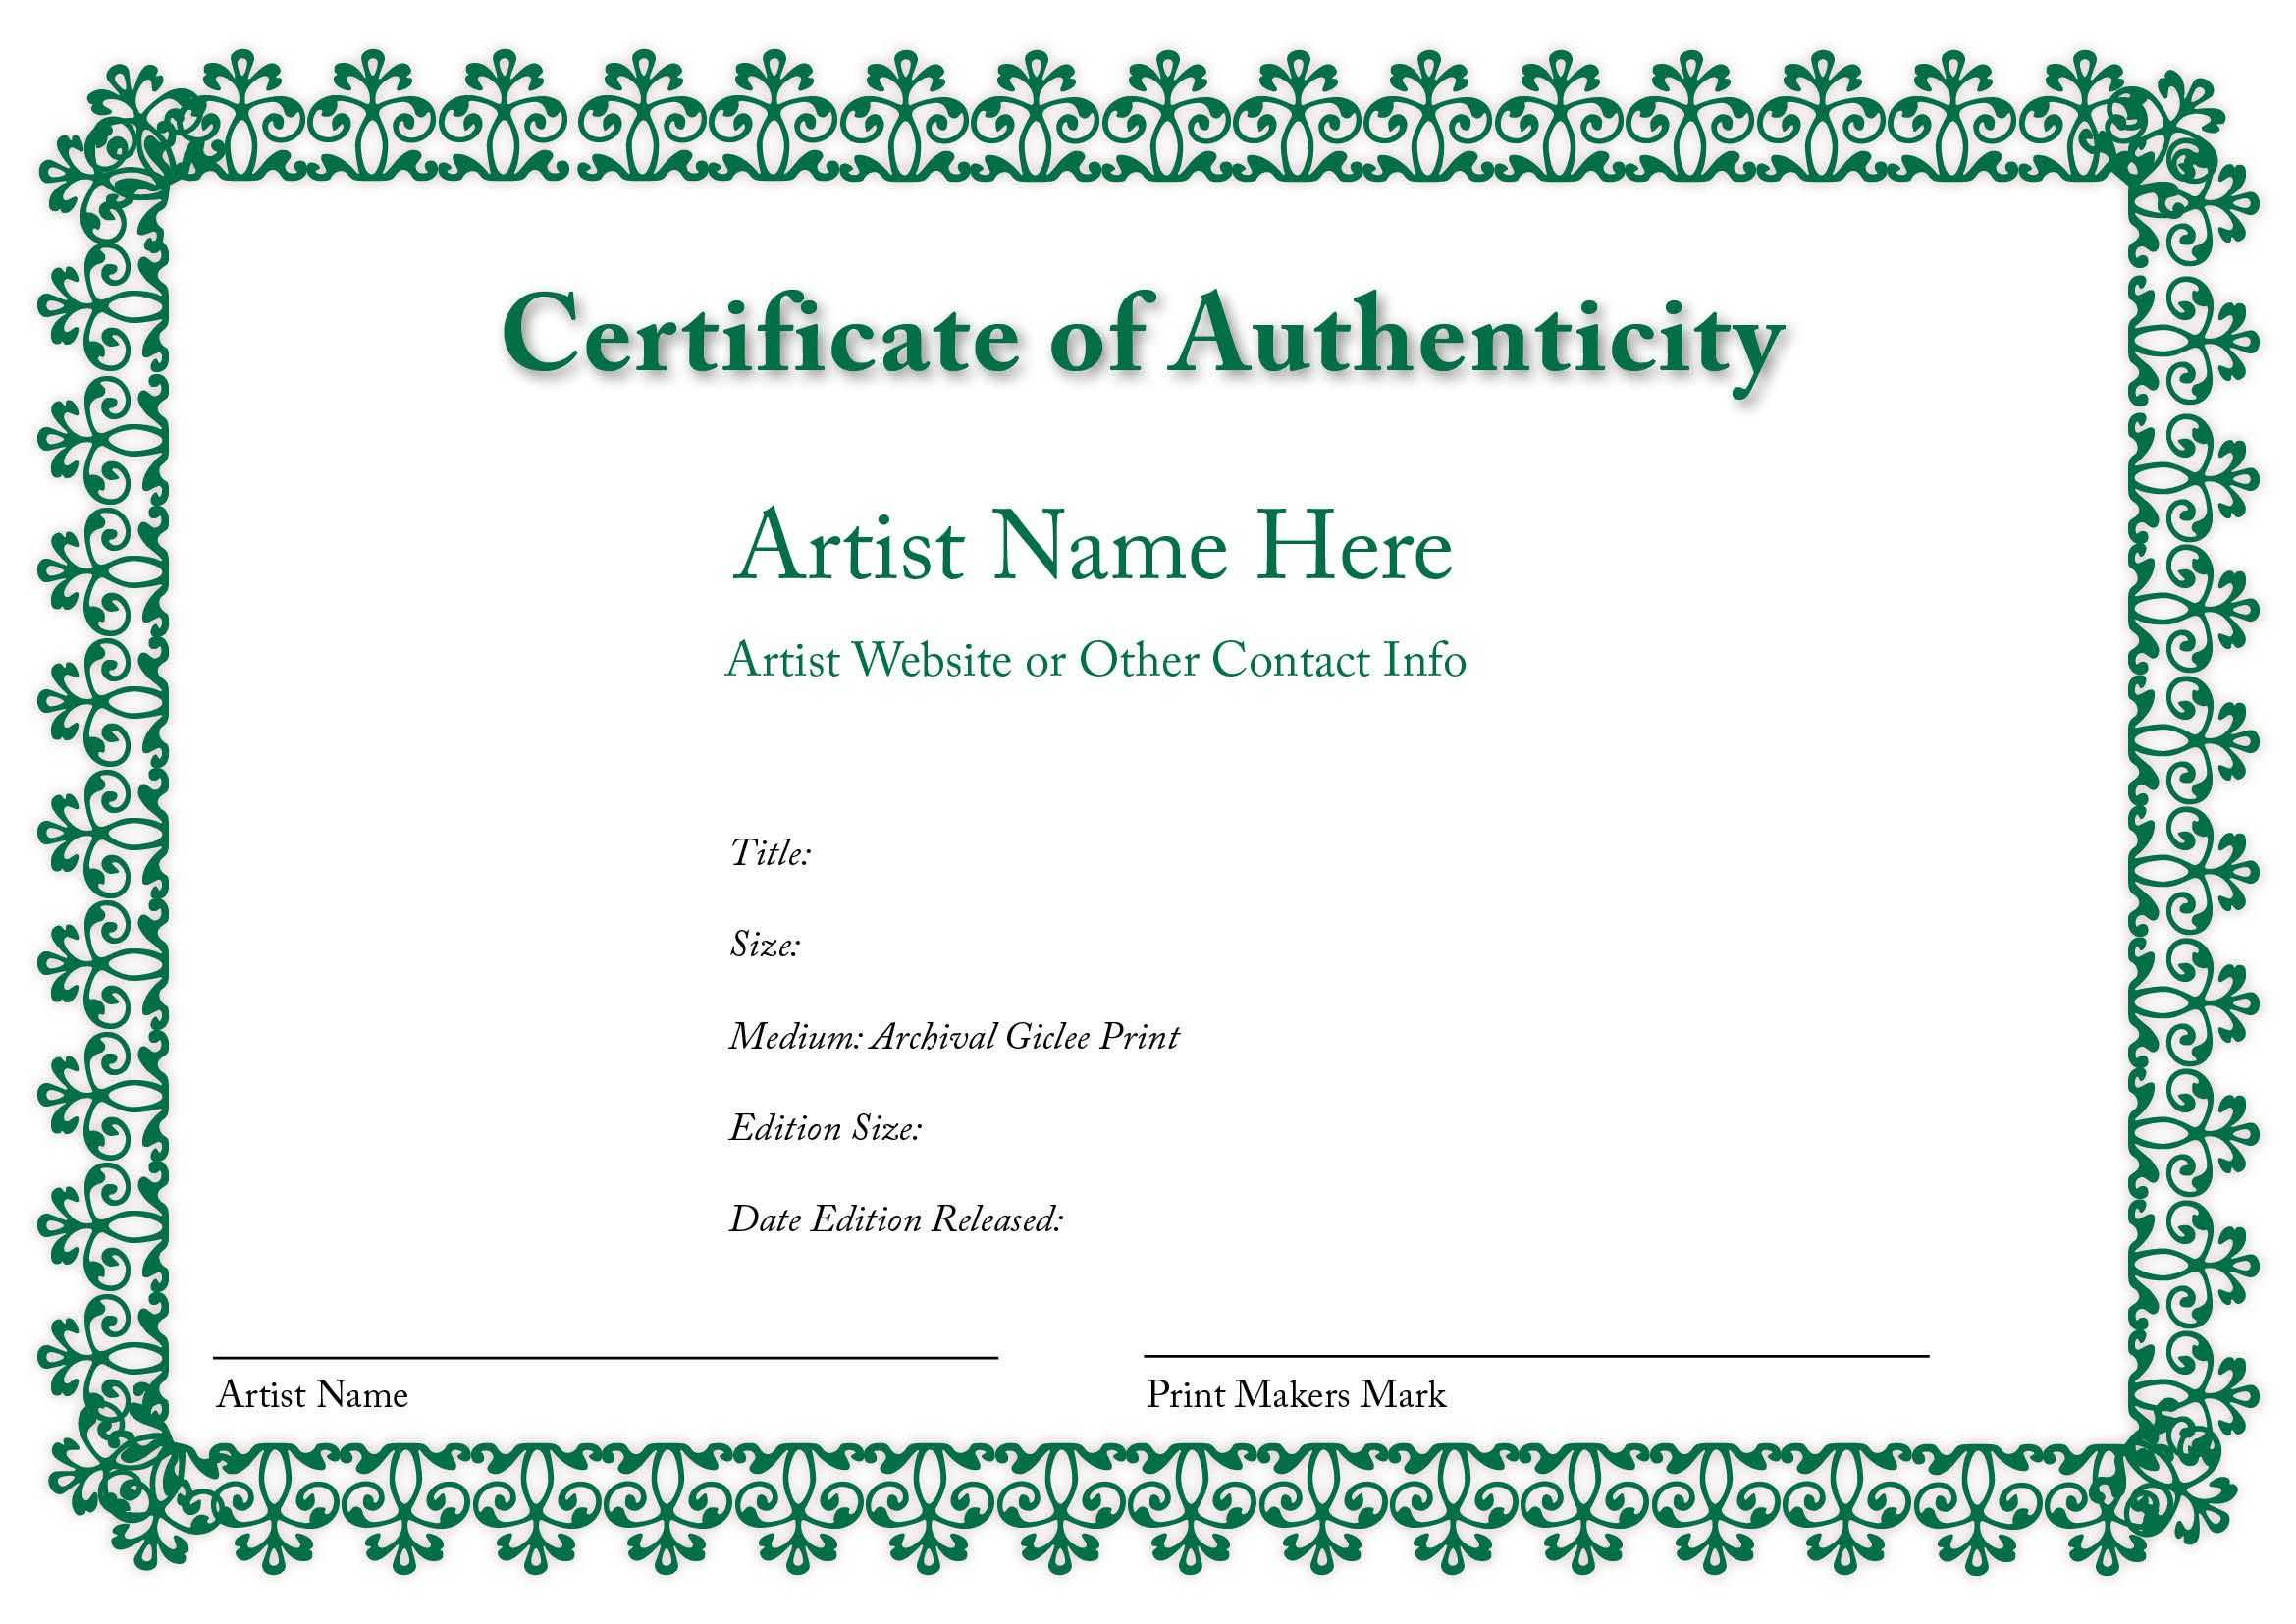 Certificate Of Authenticity Of An Art Print In 2019 Within Certificate Of Authenticity Template